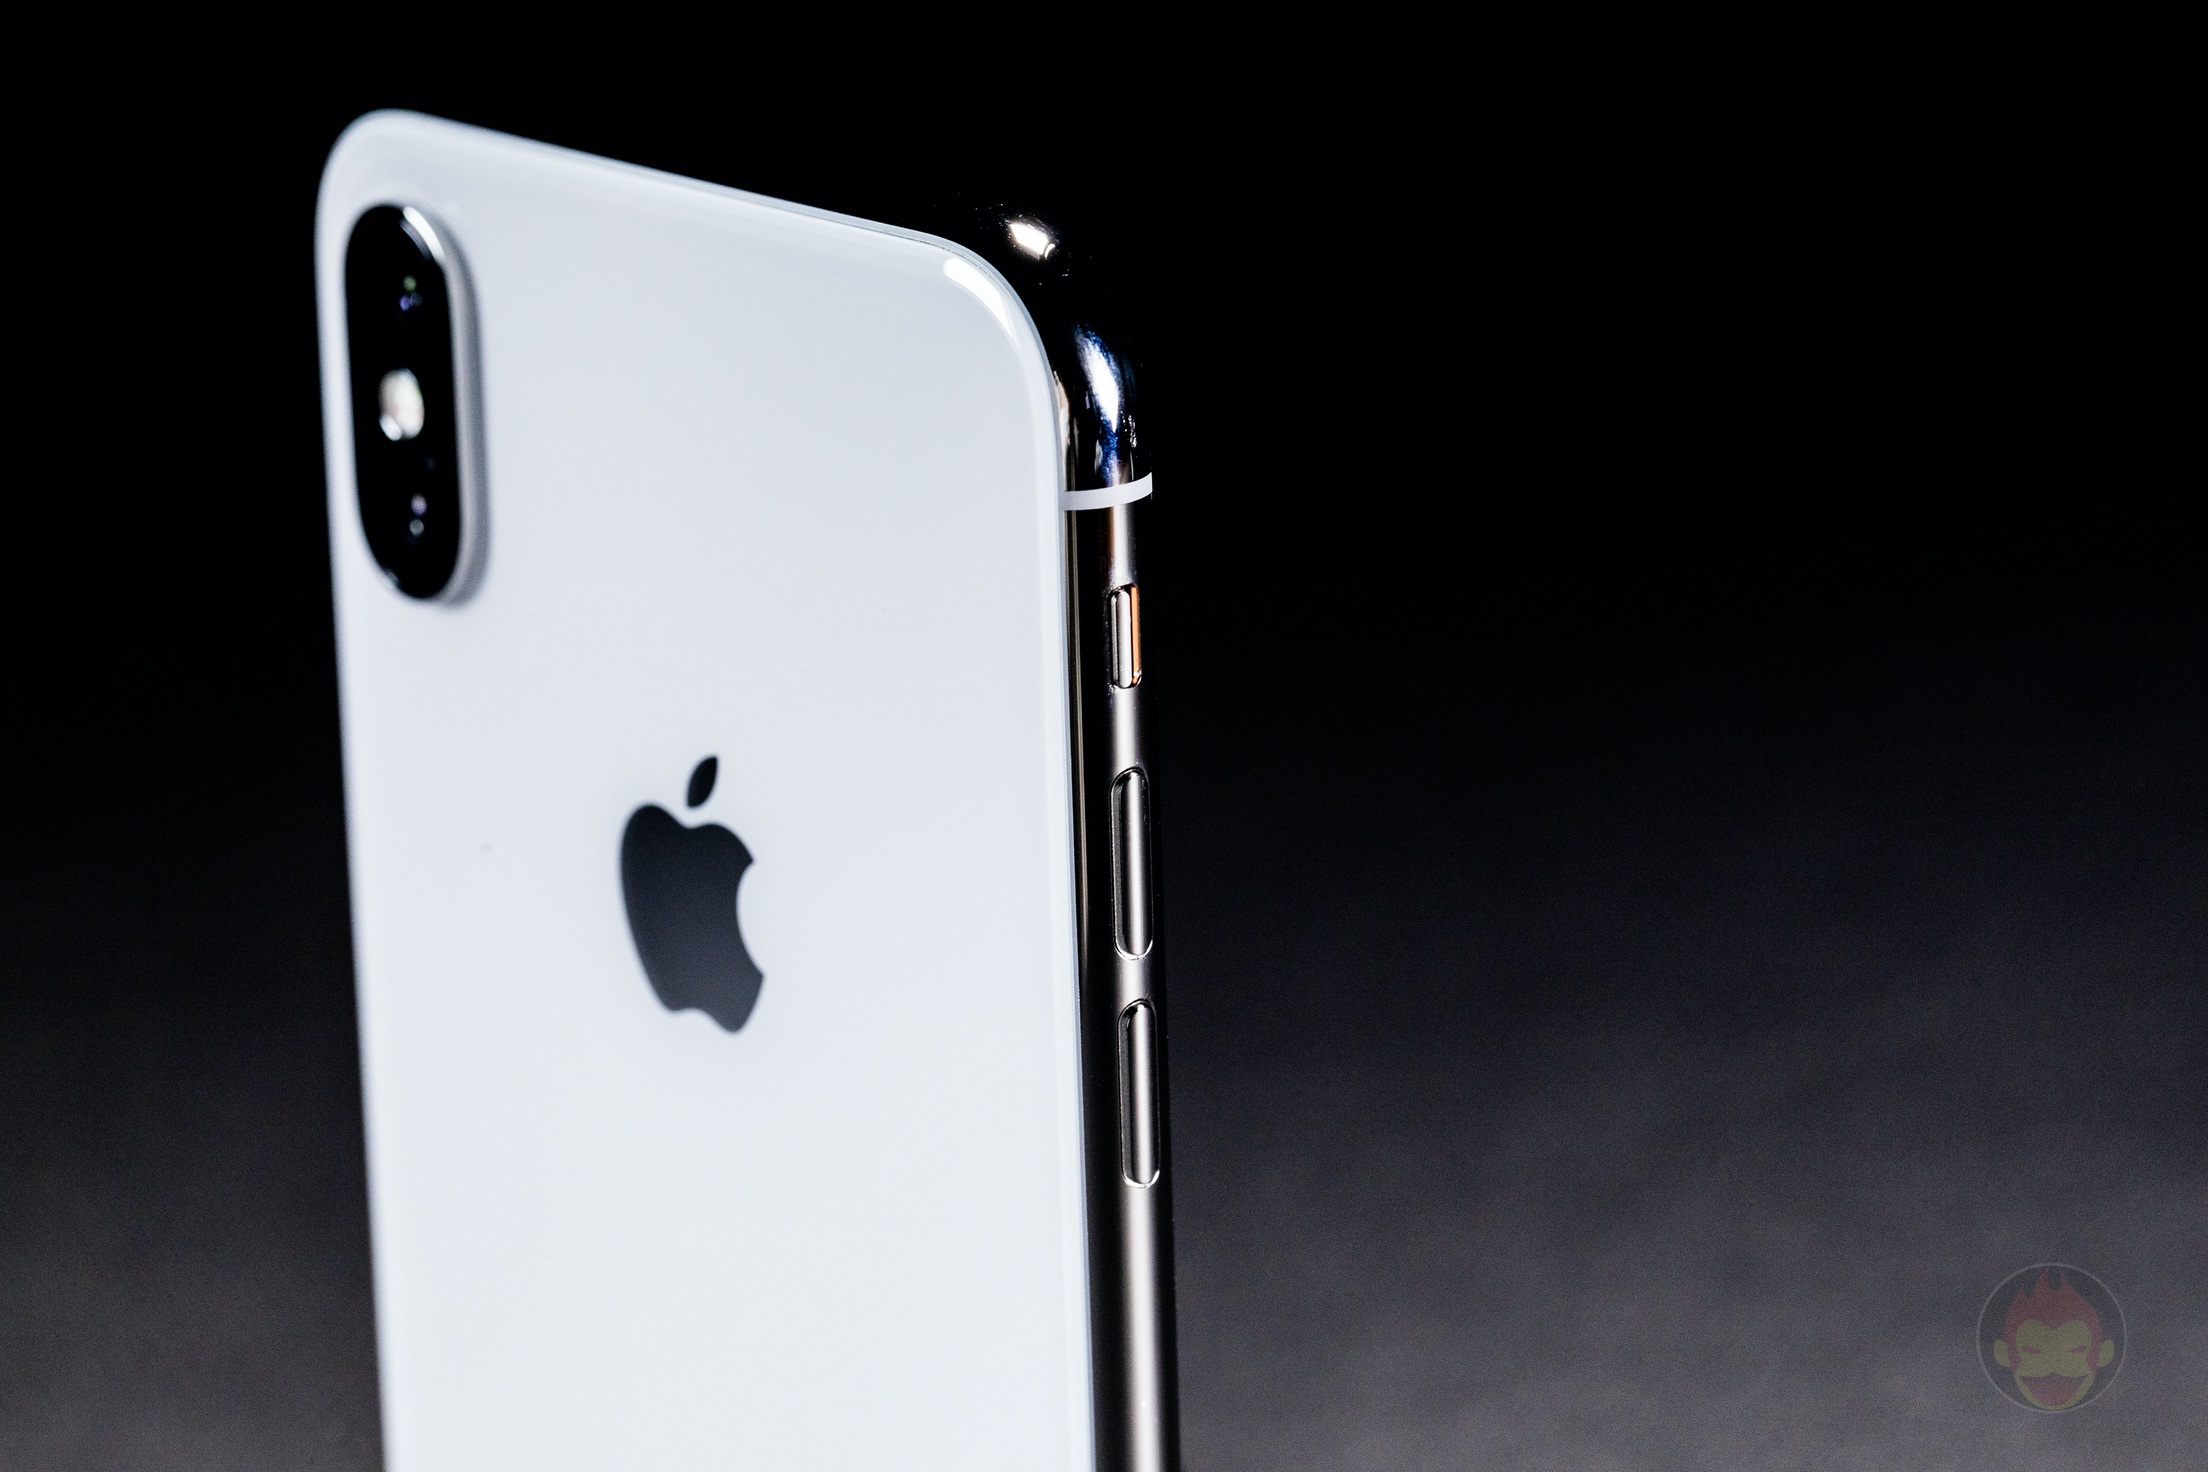 iPhone-X-Silver-Review-30.jpg